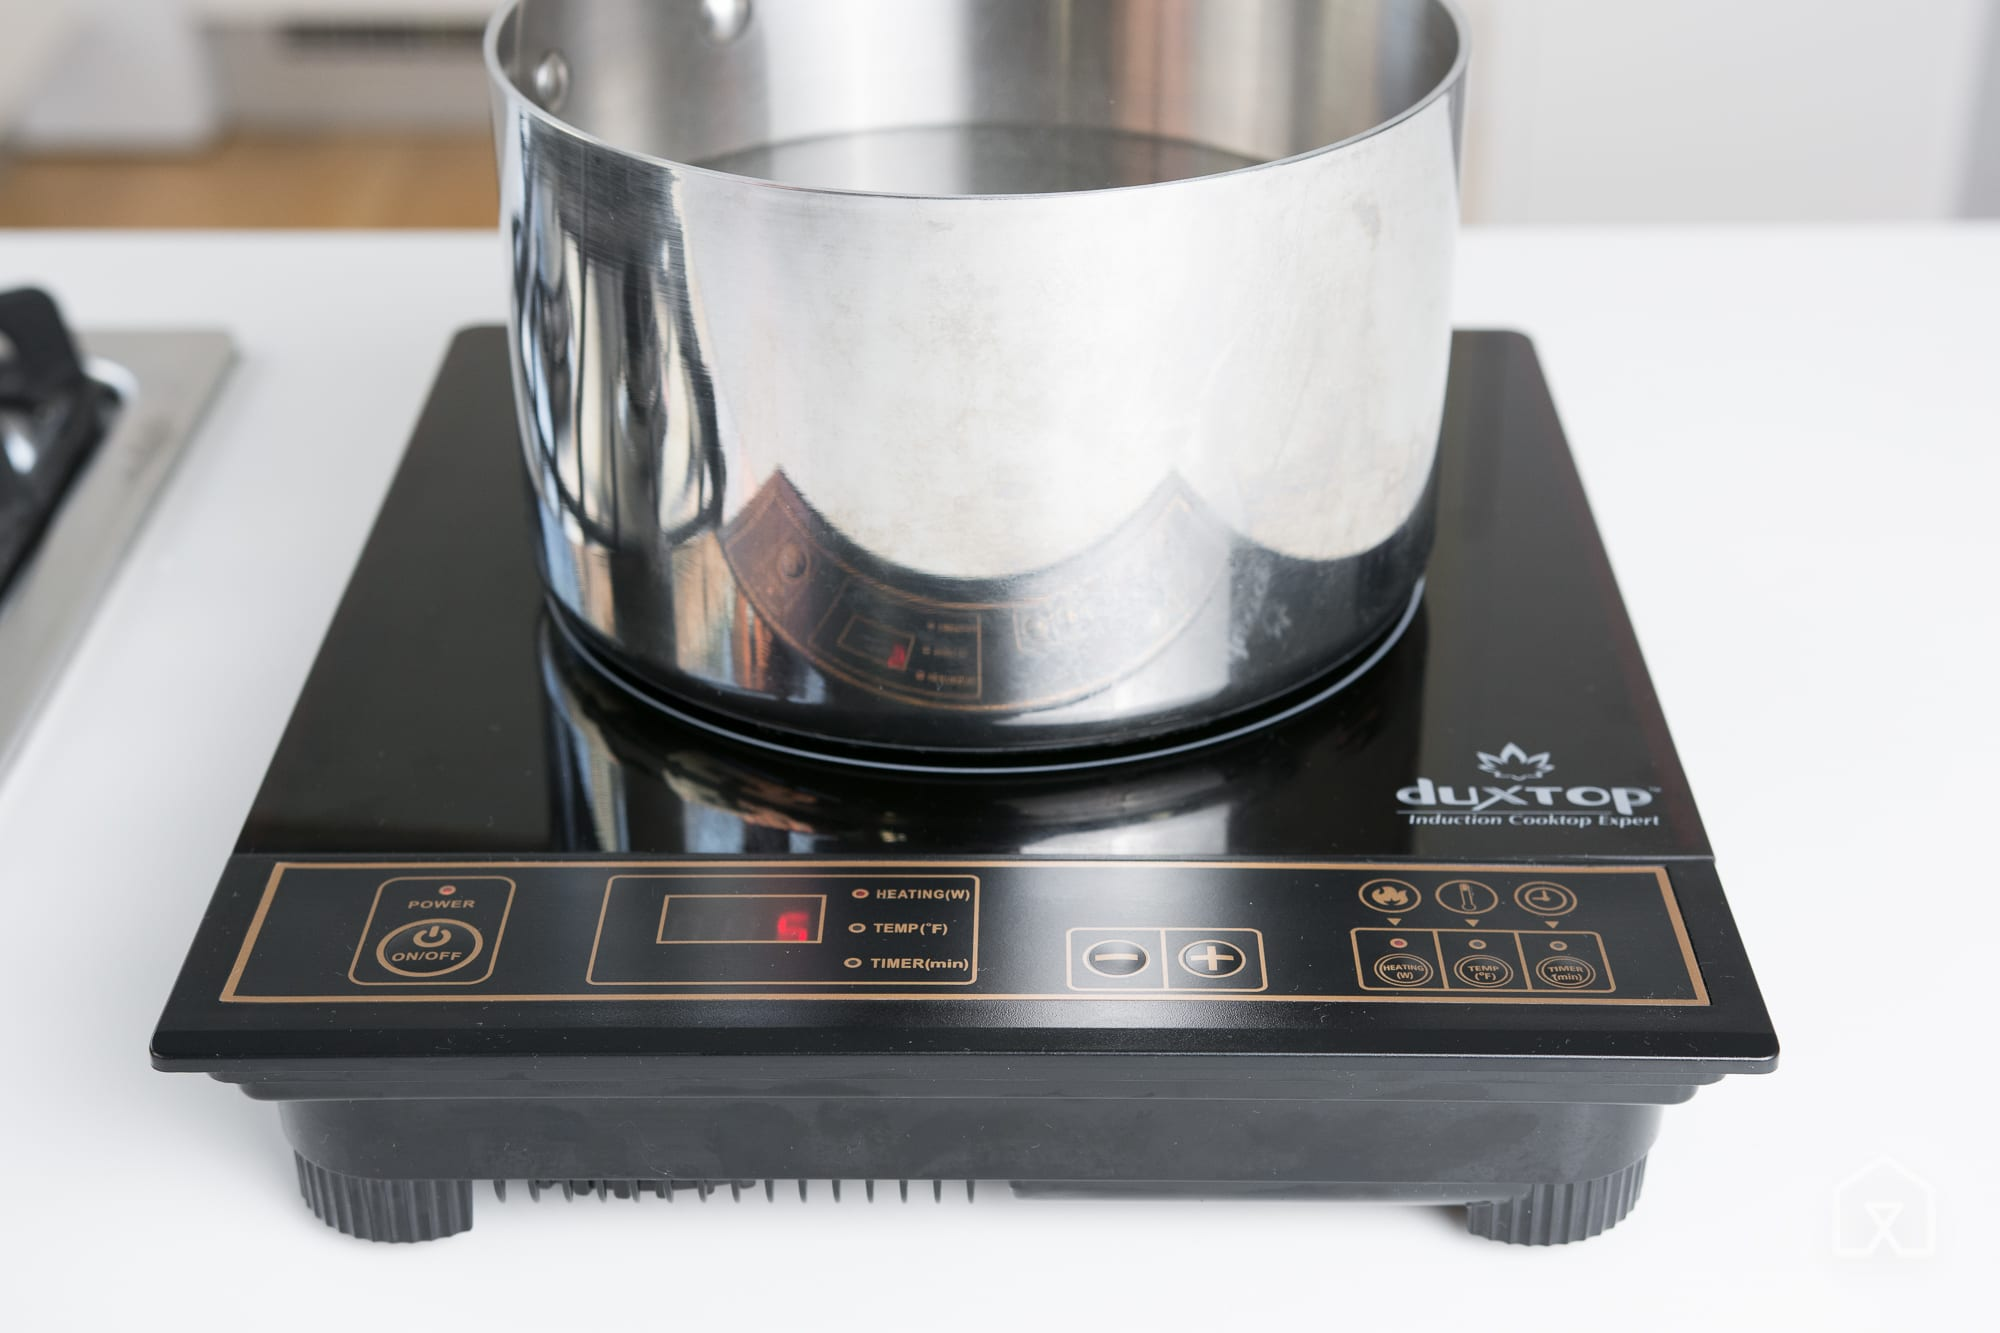 Best Portable Induction Cooktop 2020 The best portable induction cooktop